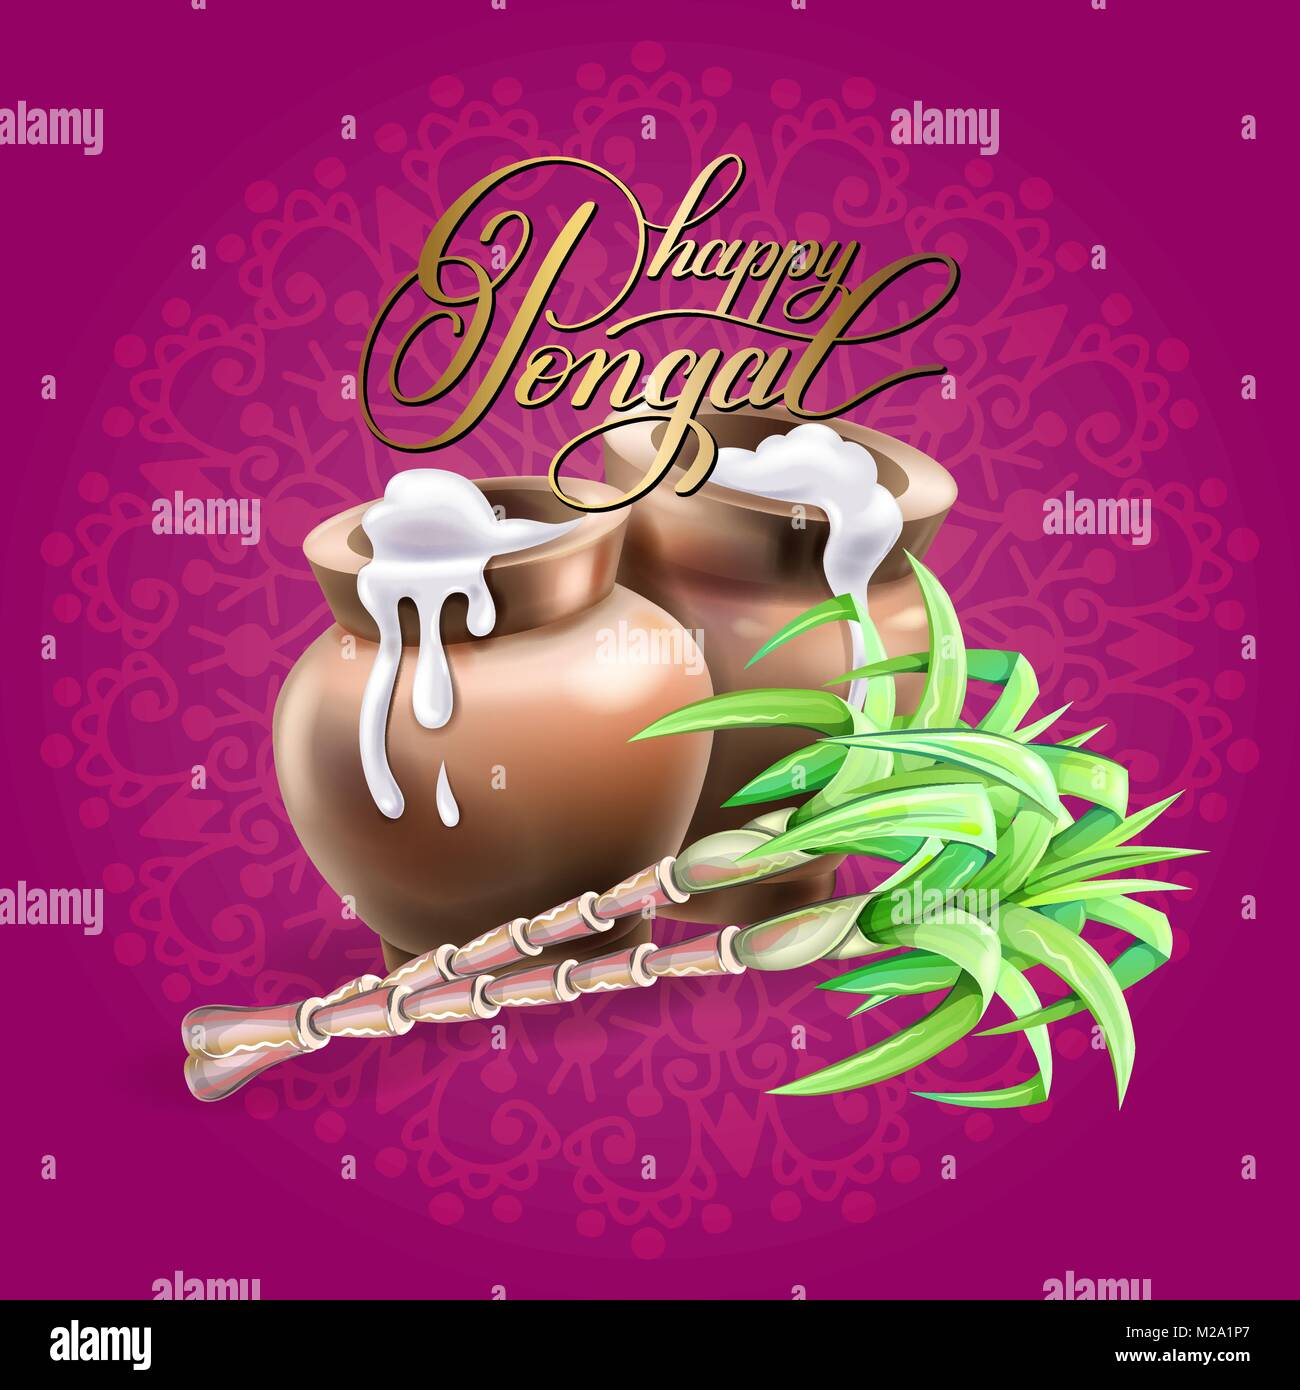 Happy Pongal Greeting Card To South Indian Winter Holiday Stock